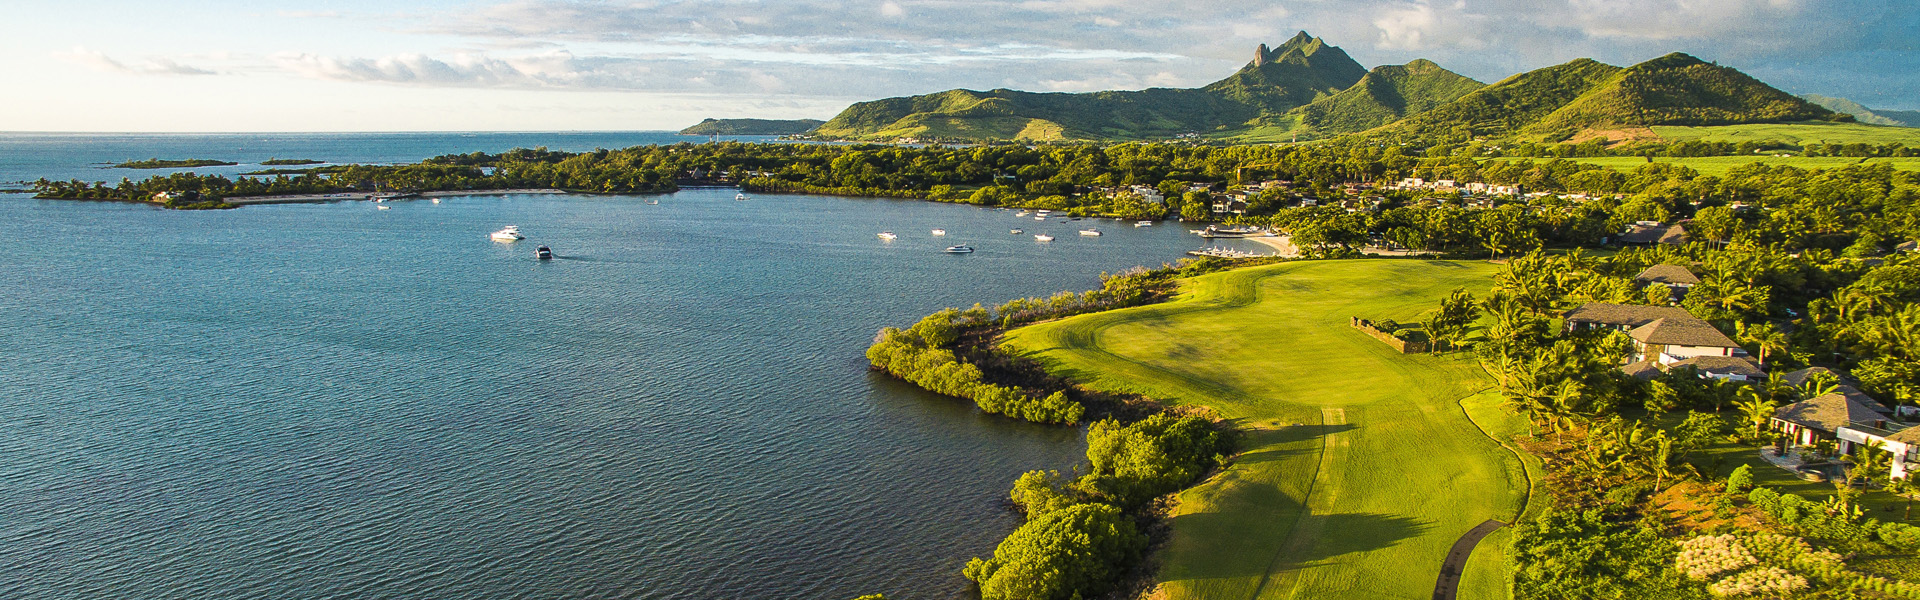 Cover of golf event named Afrasia Bank Mauritius Open at Anahita